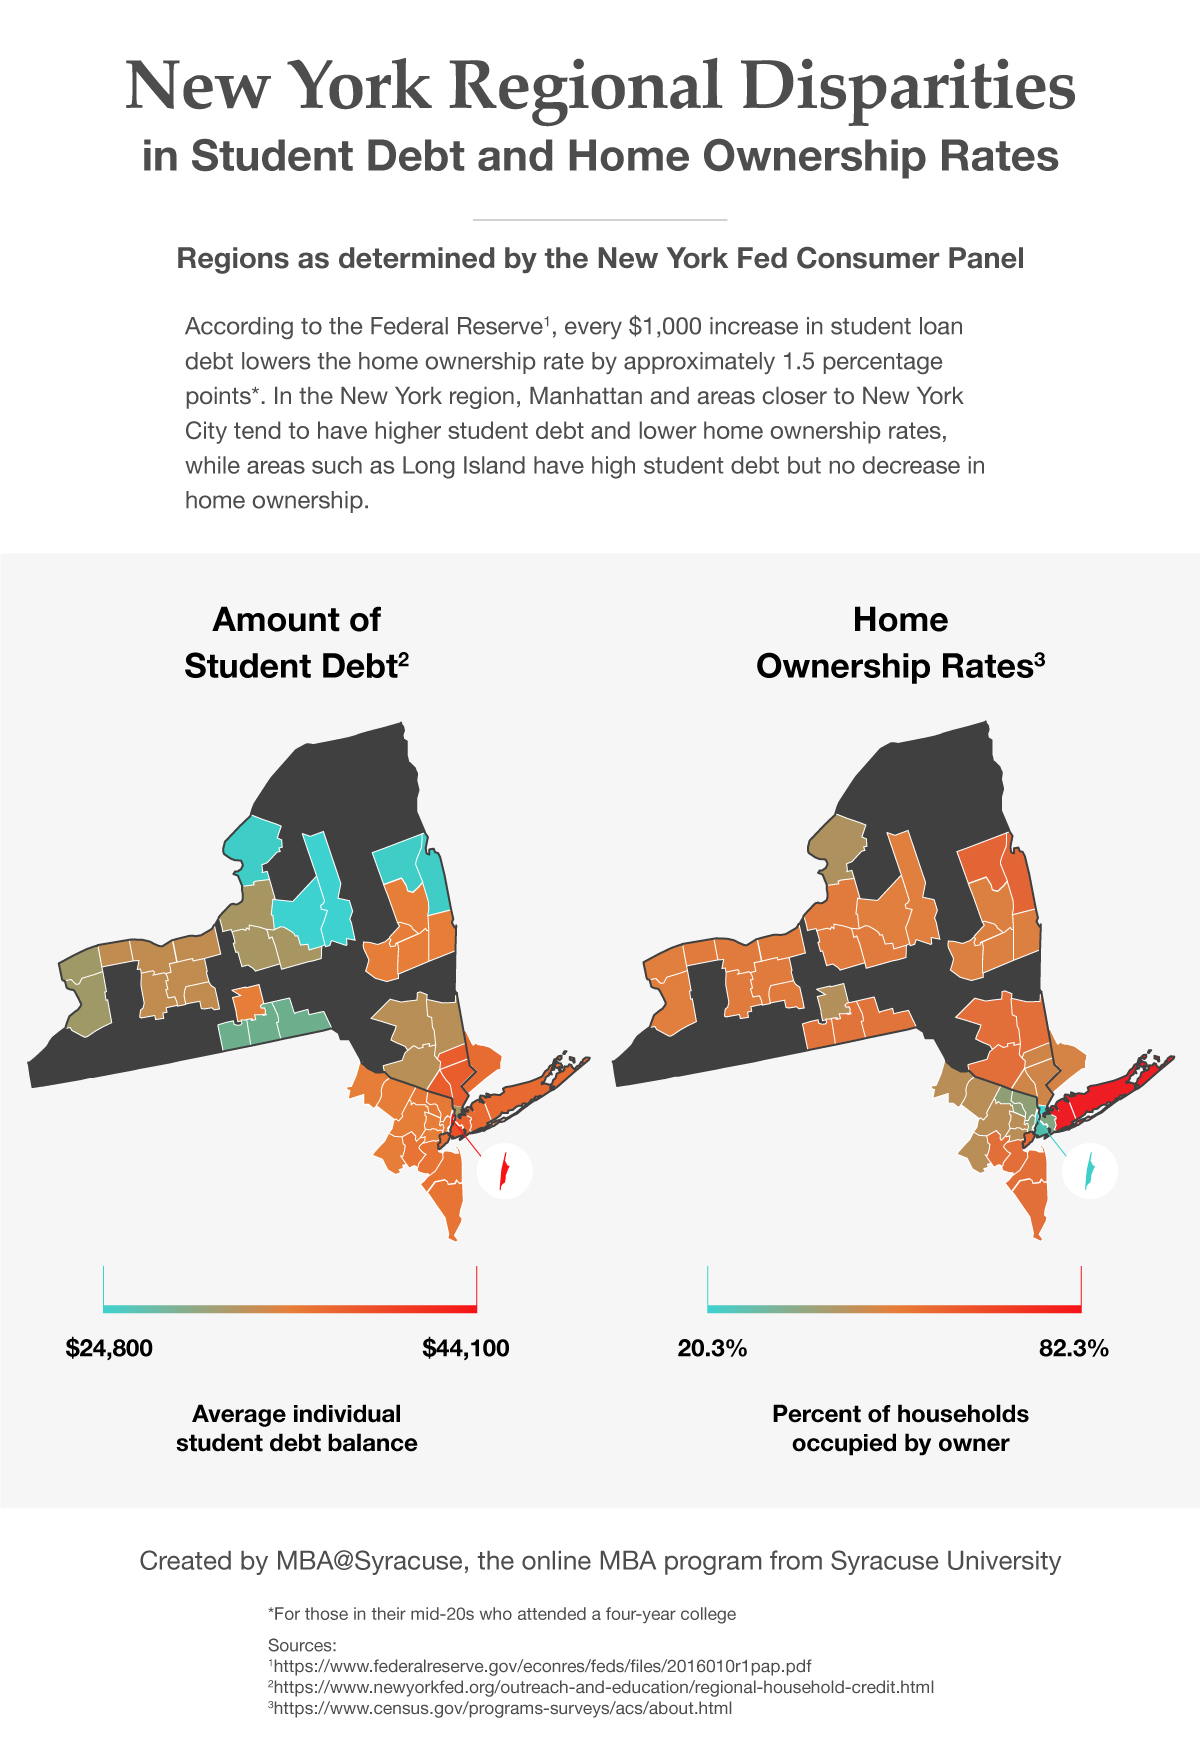 Heat maps showing the New York regional disparities in student debt and home ownership rates.